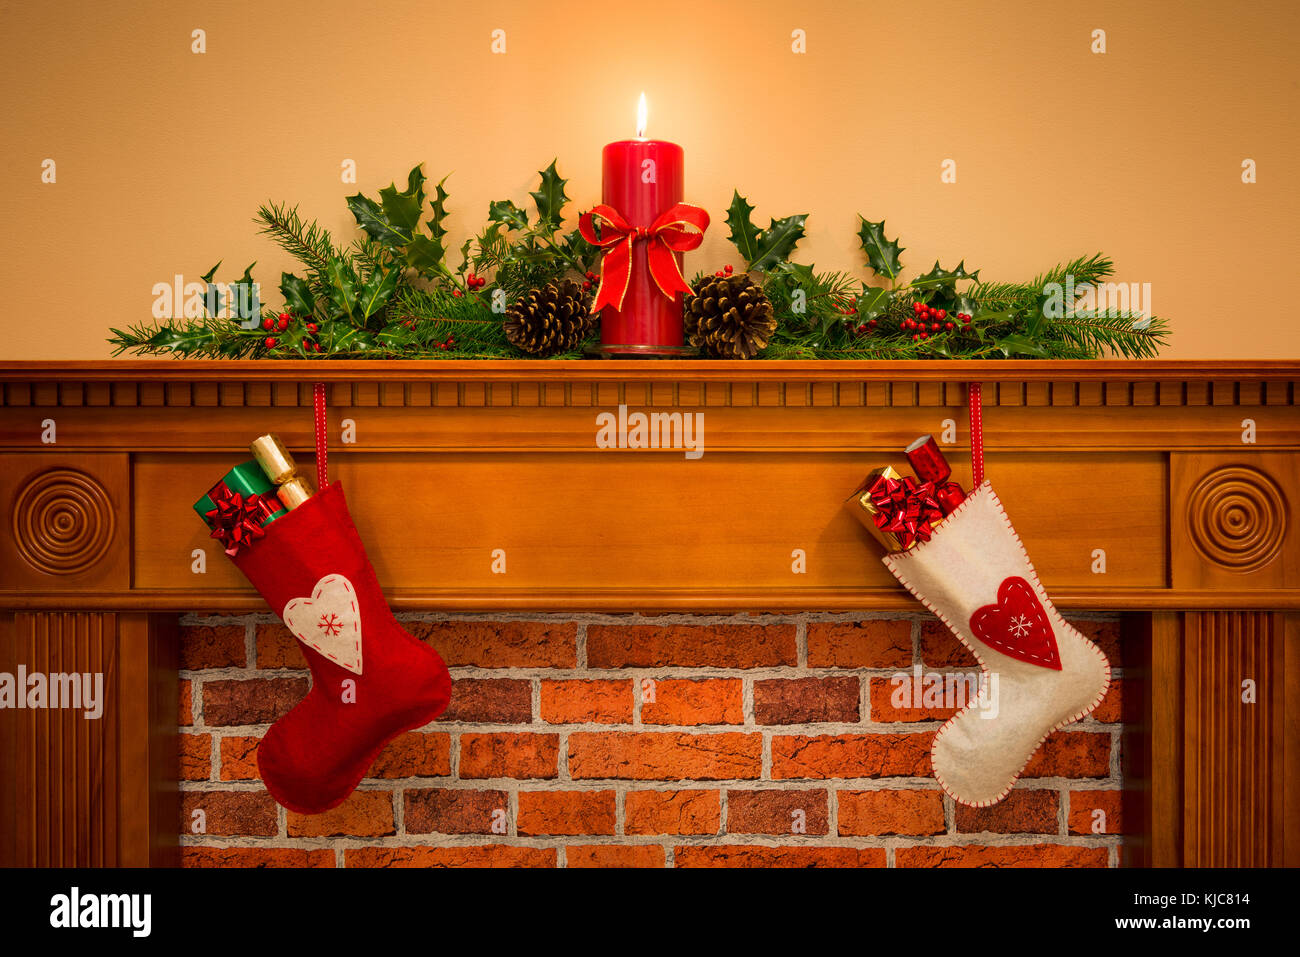 Two Christmas stockings with gift wrapped presents hanging on a mantelpiece over a fireplace, plus burning candle Stock Photo